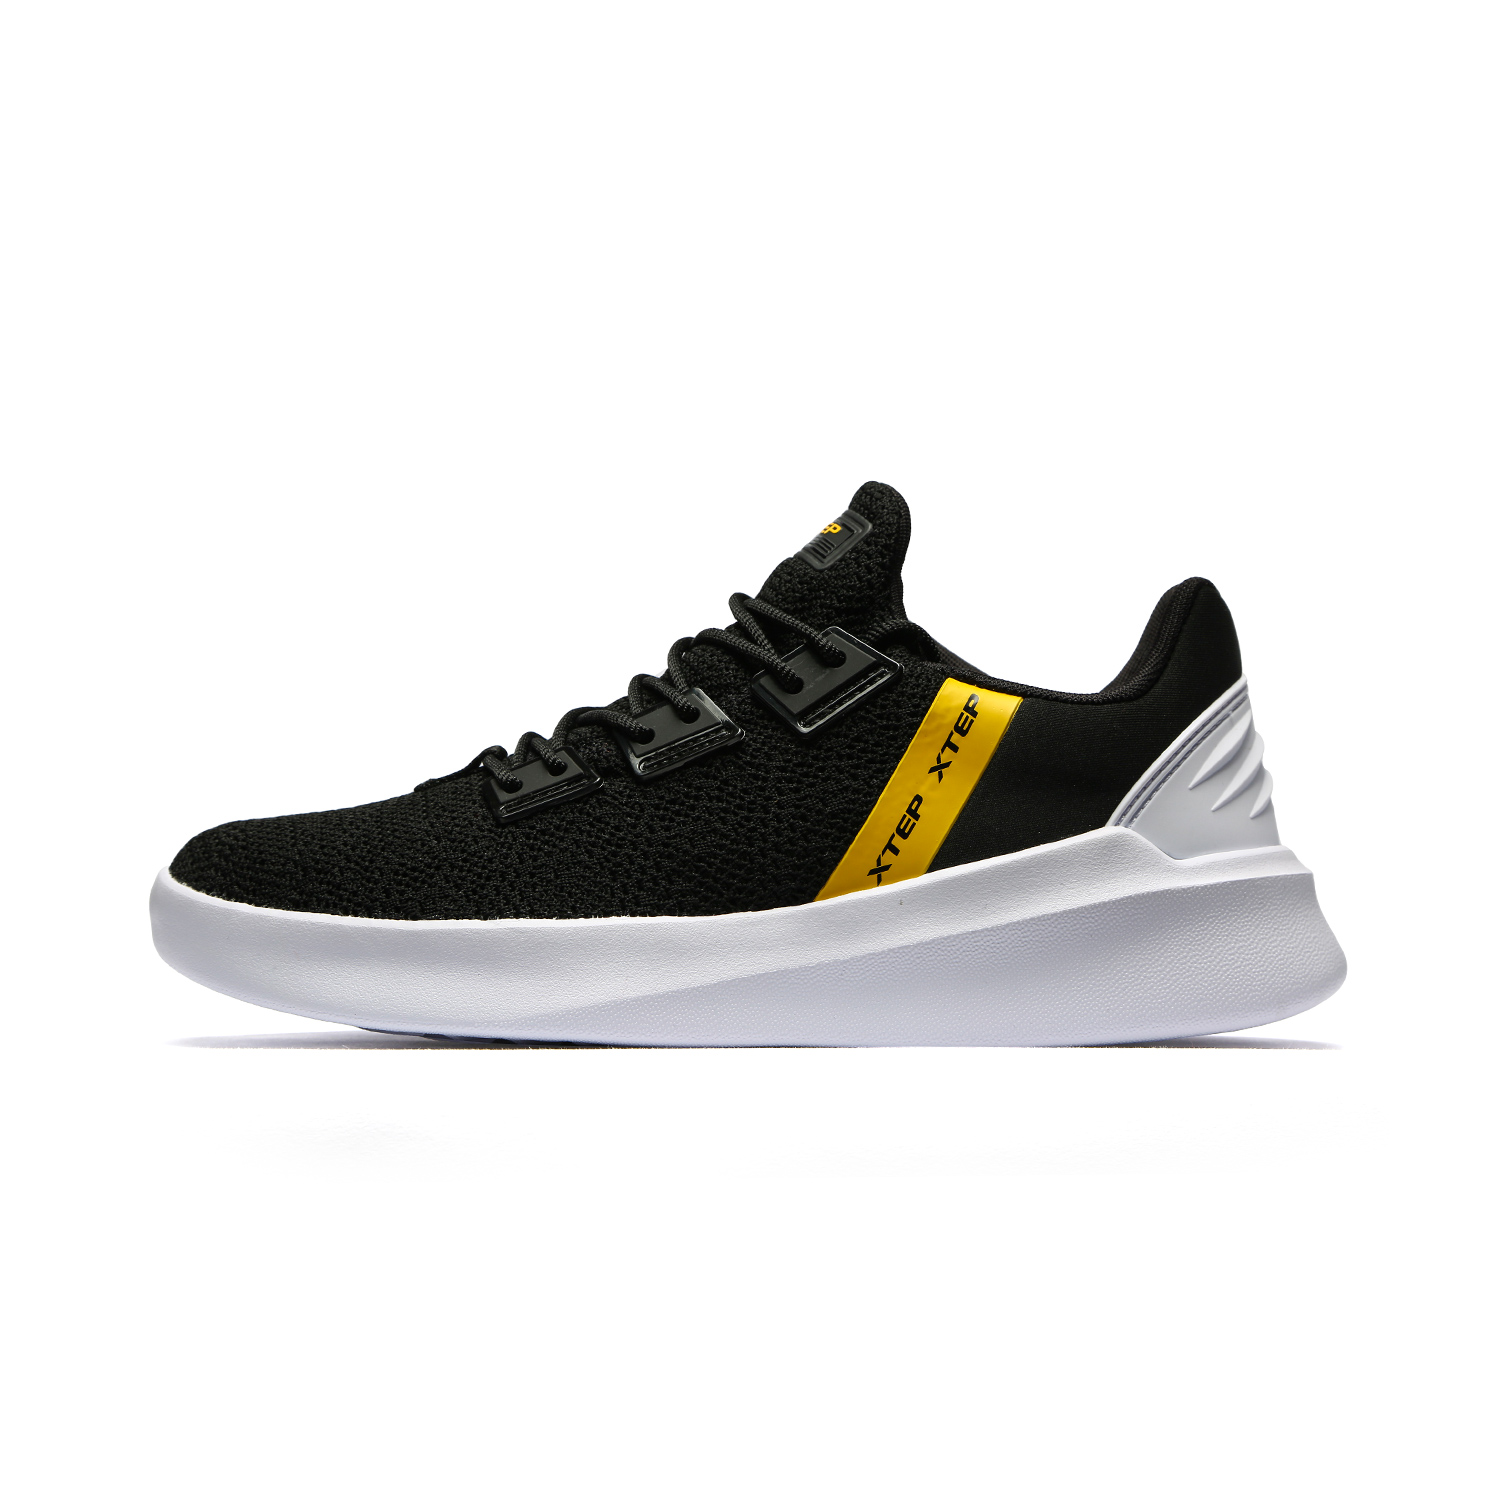 Men's sneakers Casual Skate-boarding Shoes